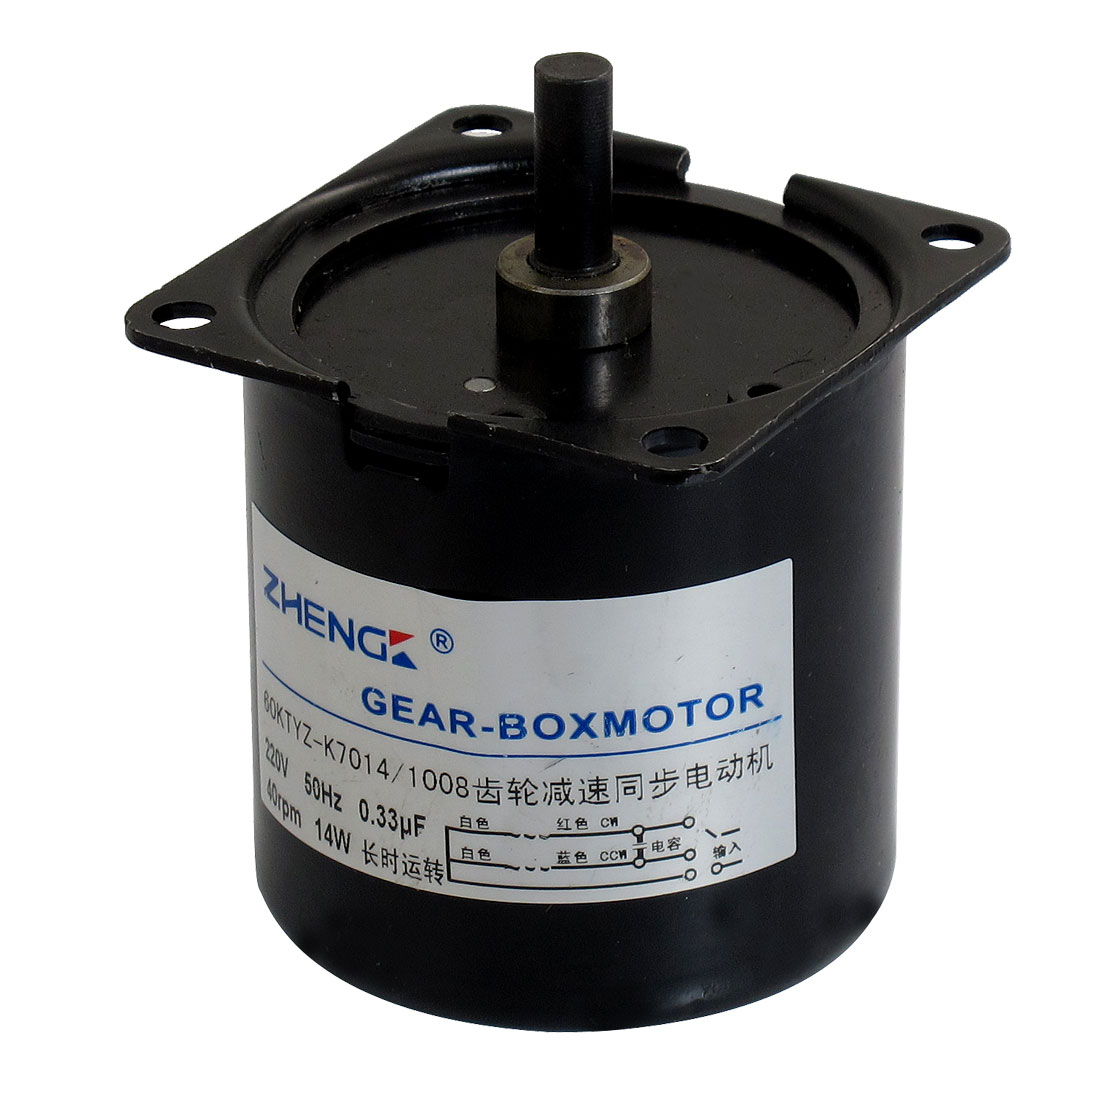 60PTYZ 60mm x 62mm Body Decelerating Geared Motor 220VAC 40RPM 14W